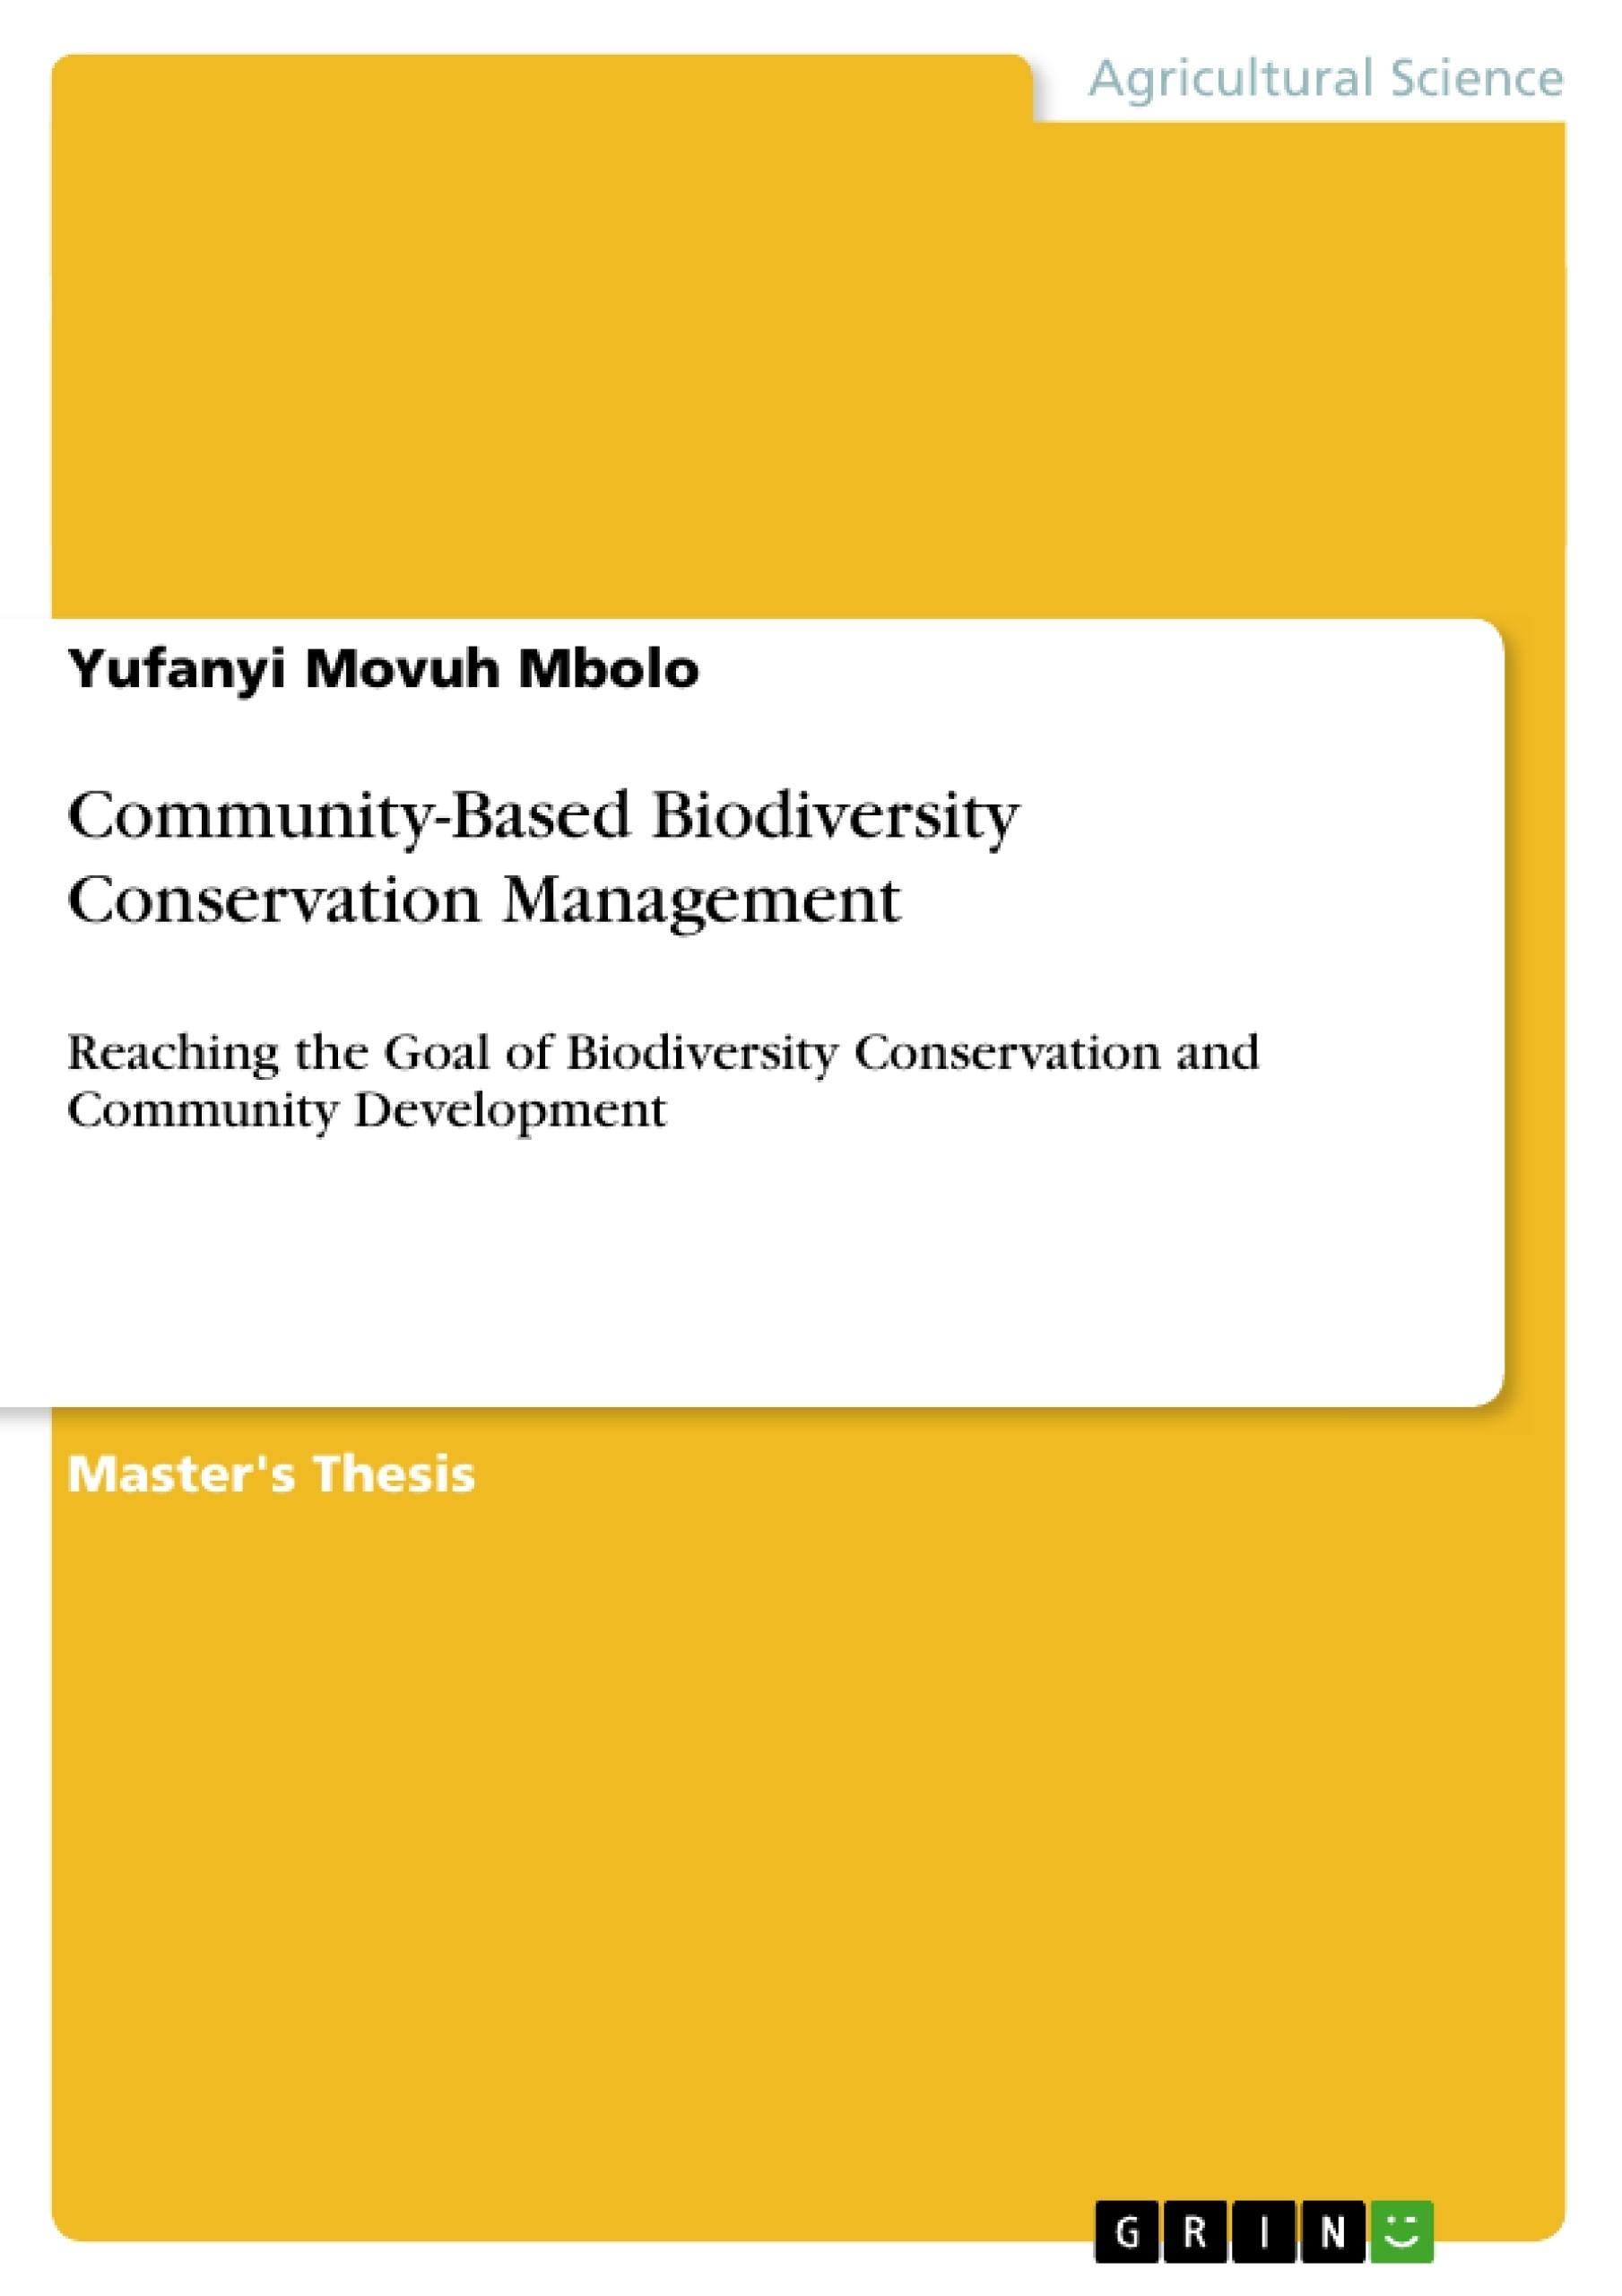 community based biodiversity conservation management publish community based biodiversity conservation management publish your master s thesis bachelor s thesis essay or term paper